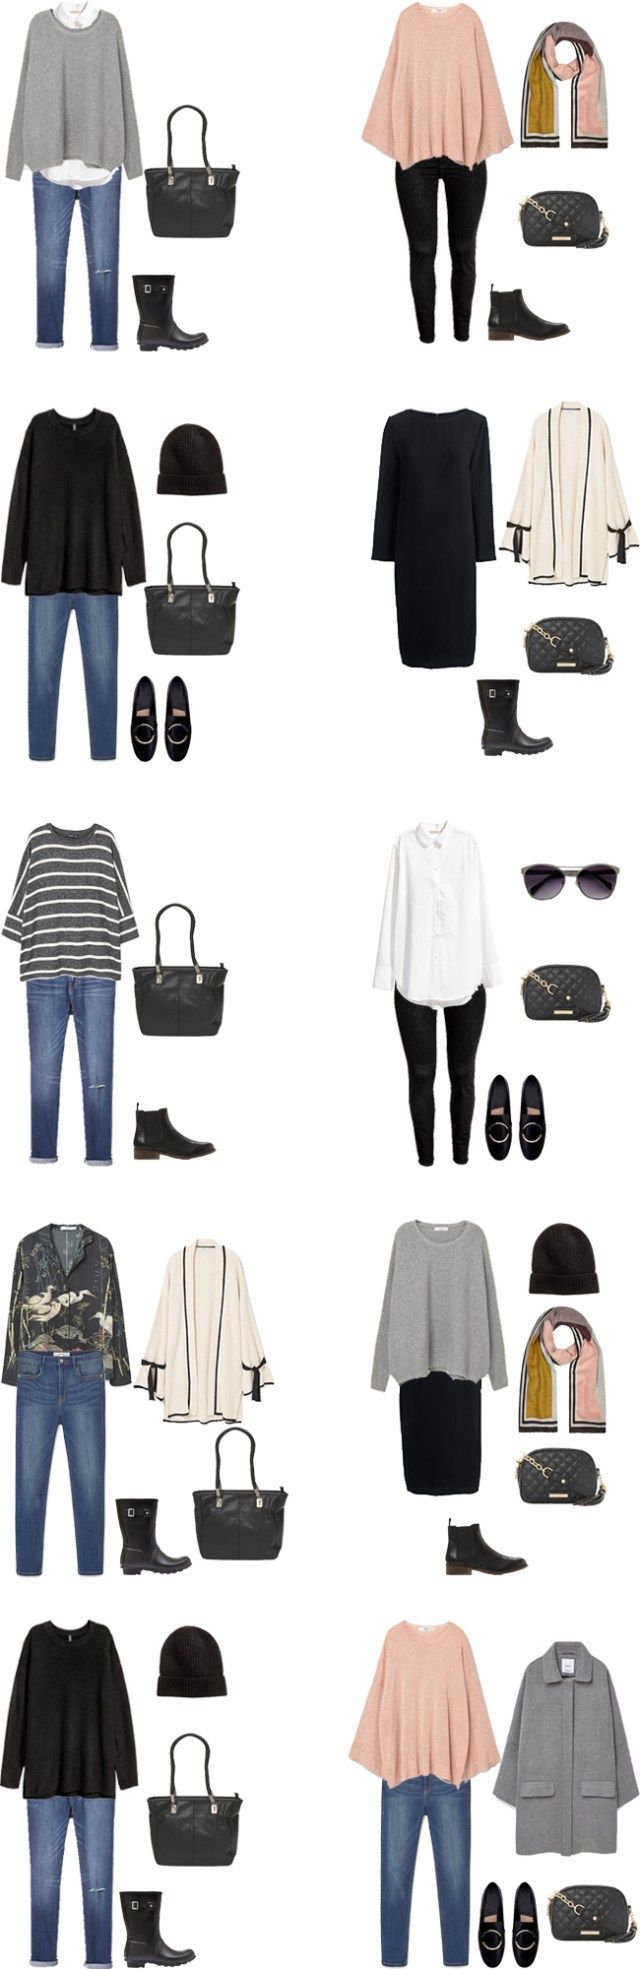 What to Pack for London Christmas + New Years - livelovesara. Packing List: 10 days for Christmas and New Year Eve in London- Outfit Options 2. Chistmas 2016